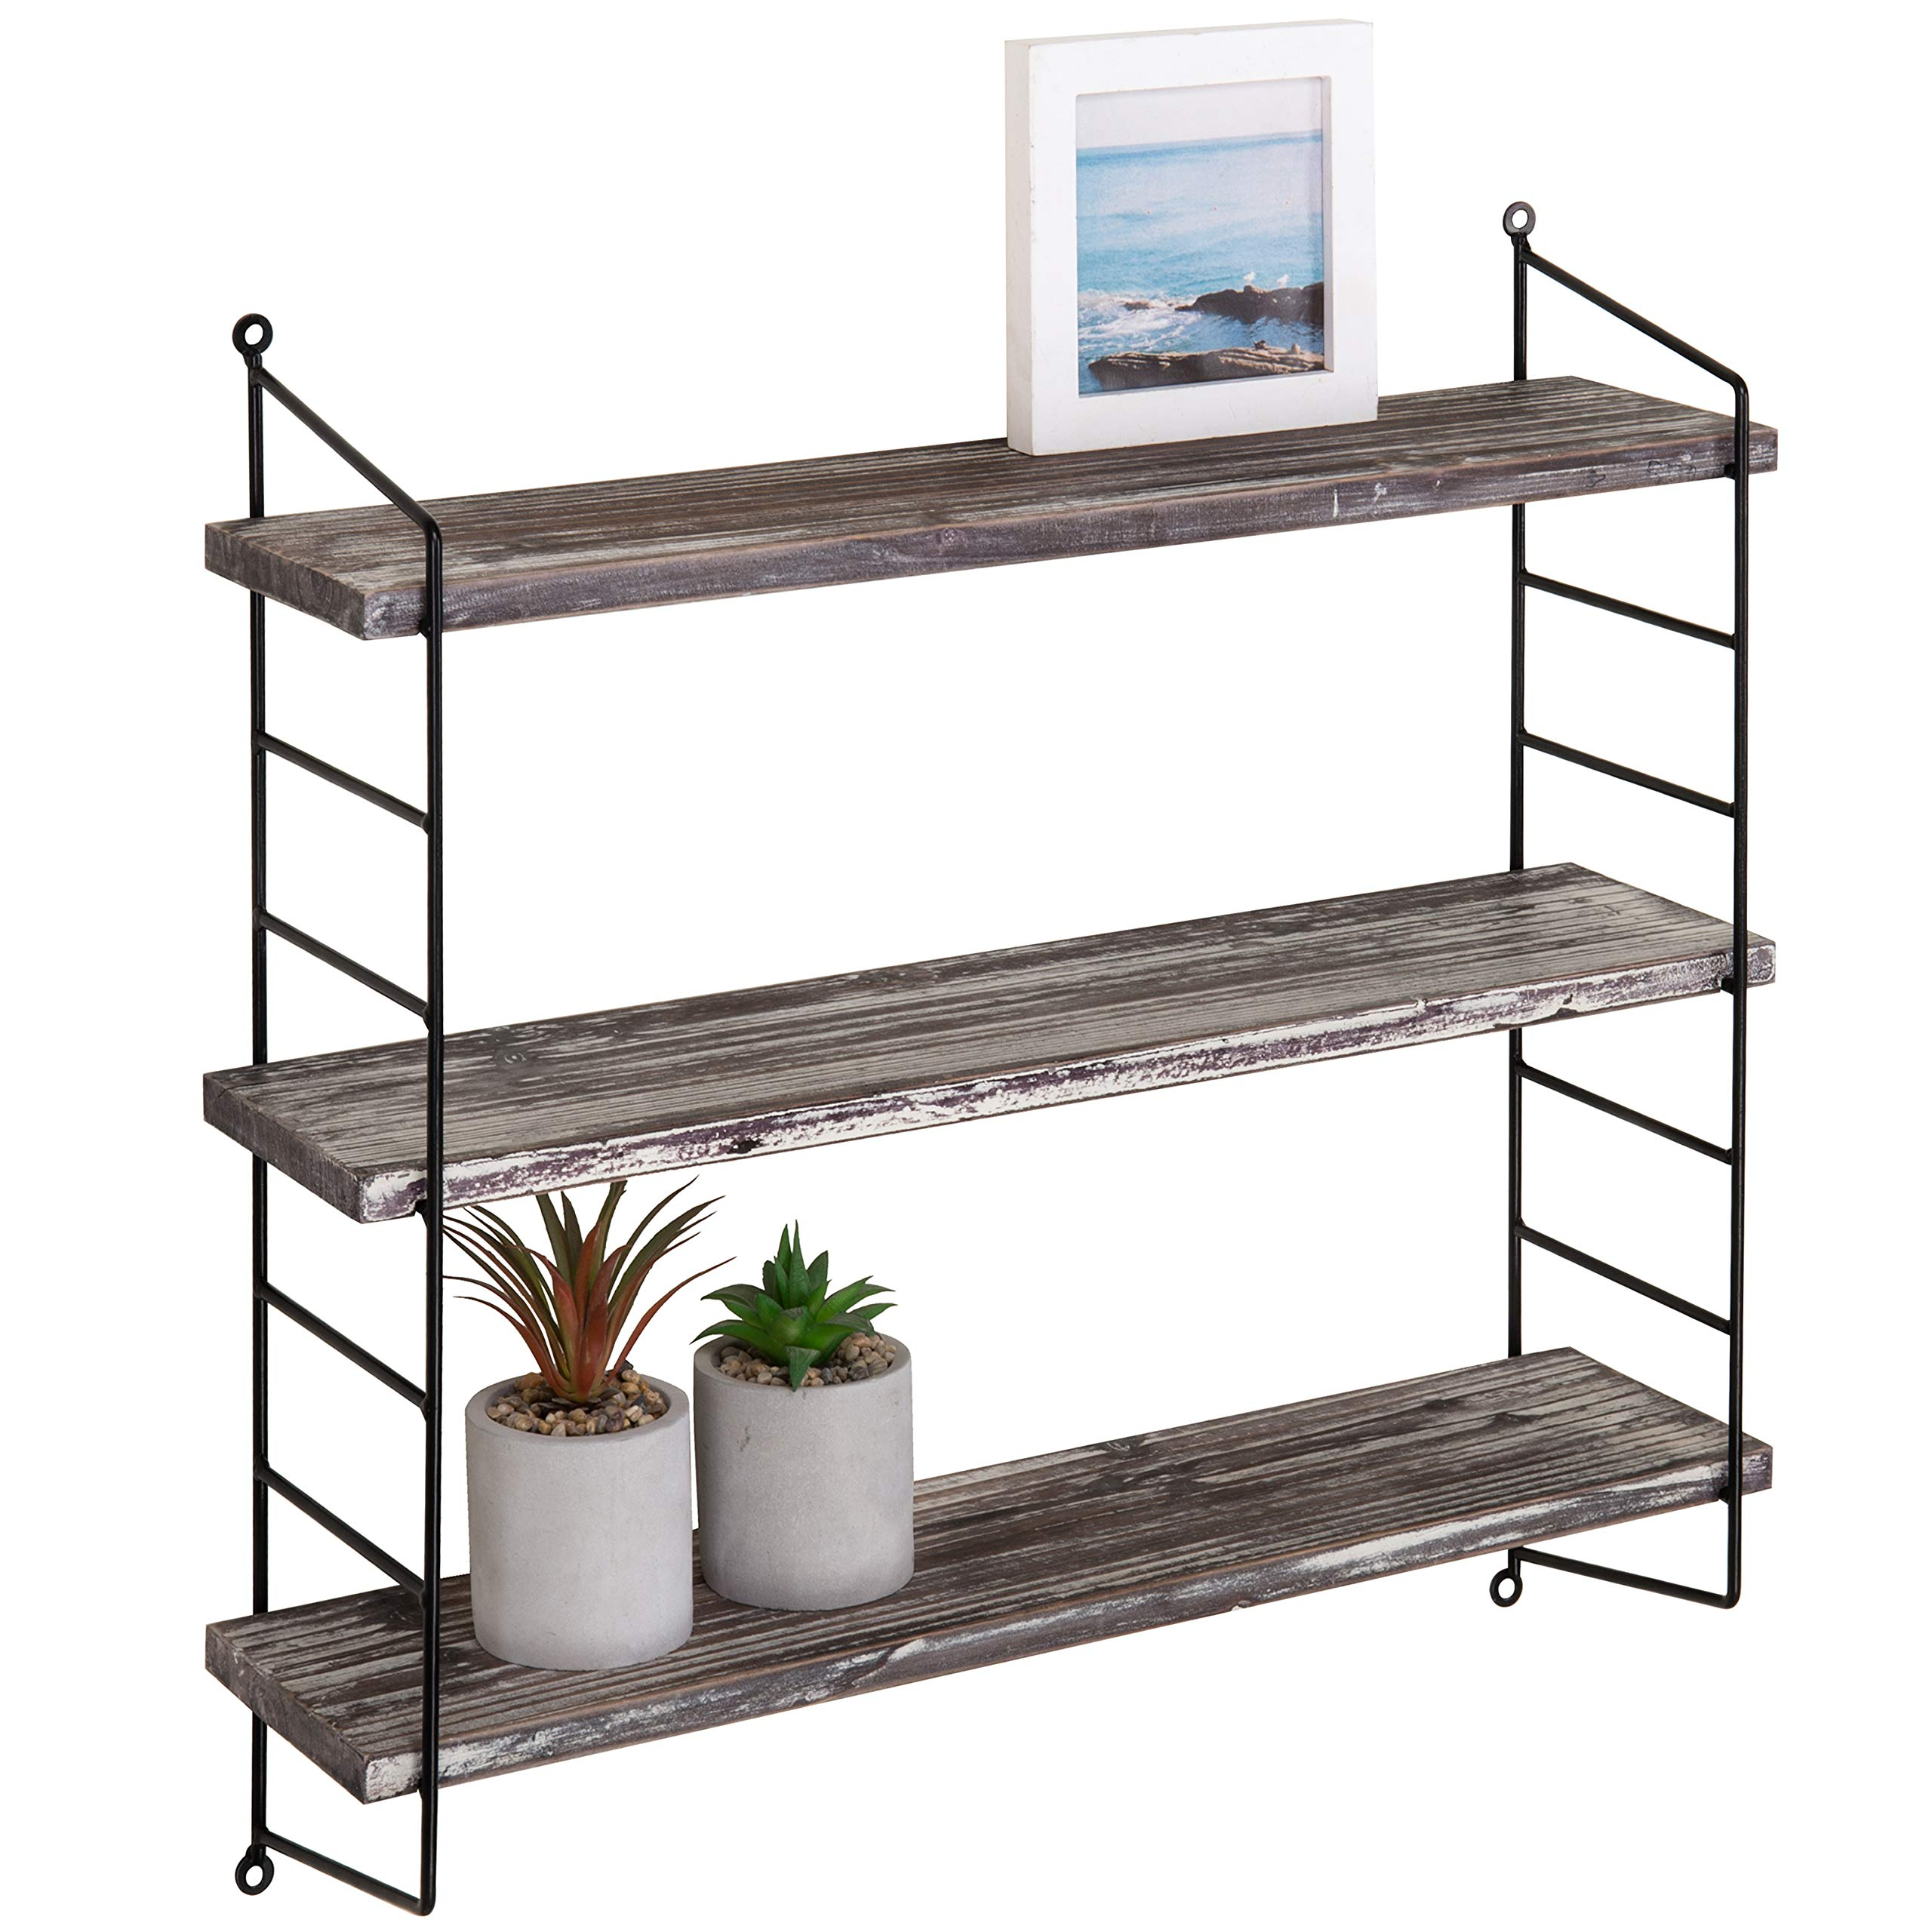 MyGift Wall-Mounted 3-Tier Torched Wood & Metal Adjustable Shelf